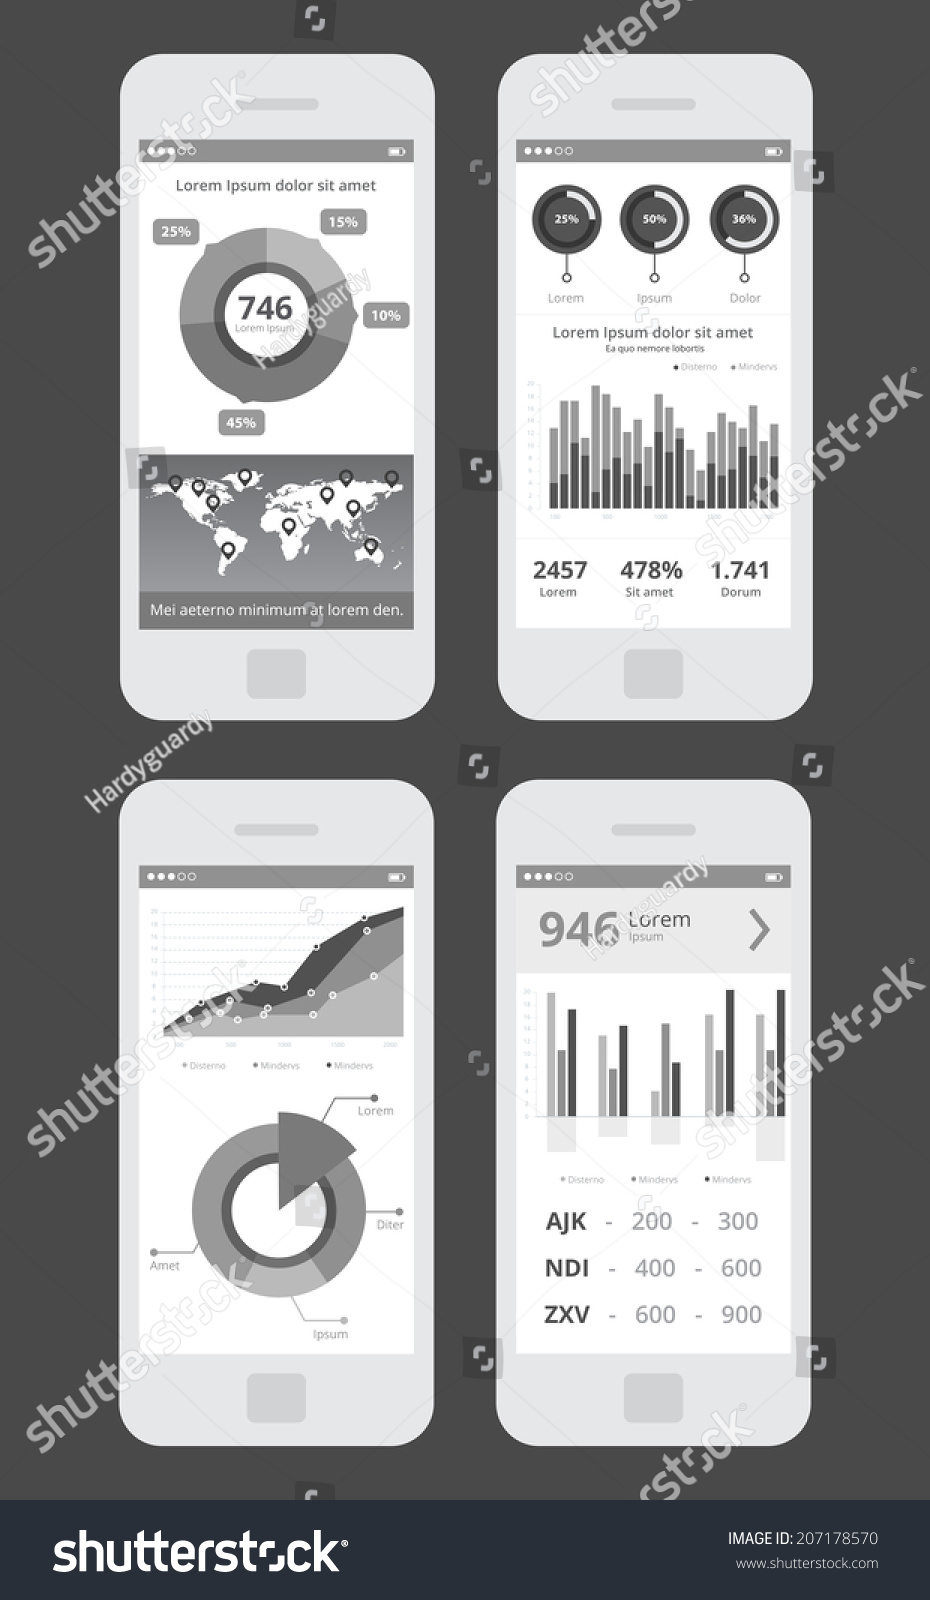 Wireframe business ui kit mobile app stock vector 207178570 wireframe business ui kit mobile app statistics graphs piecharts prices world gumiabroncs Gallery